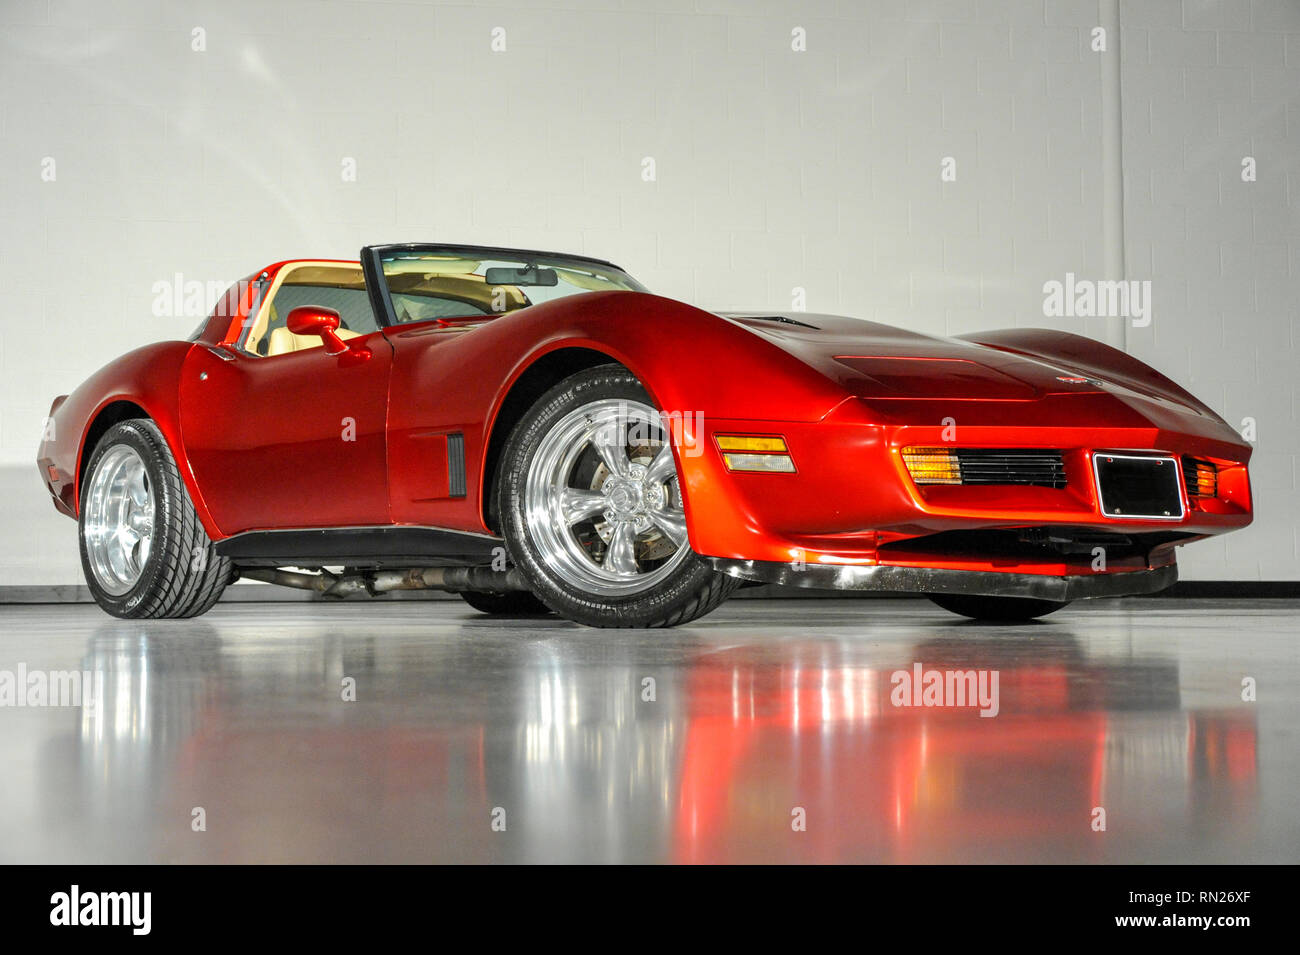 Feb 11, 2019: 1980 Chevrolet Corvette in Candy Apple Red. Original L48, 350 ci. Stroked to 383 ci. Edelbrock RPM 64 cc heads, ported and polishedComp Cams, Xtreme Energy XE274 Roller CamRoller Rocker, SRP forged Flat Top Pistons w/ Molly ringsFully floated forged H-beam rods, Eagle forged crankAll ARP bolts, Hooker Comp Headers with electric cutoutsMSD 6AL Ignition, ( Replaced Sep. 2018) High capacity dual core radiatorMarch Serpentine belt system, Chrome AC, Painless Performance alternatorCustom valve covers and wire loomsMilodon 7 qt. oil pan with windage trayCustom exhaust with polished - Stock Image